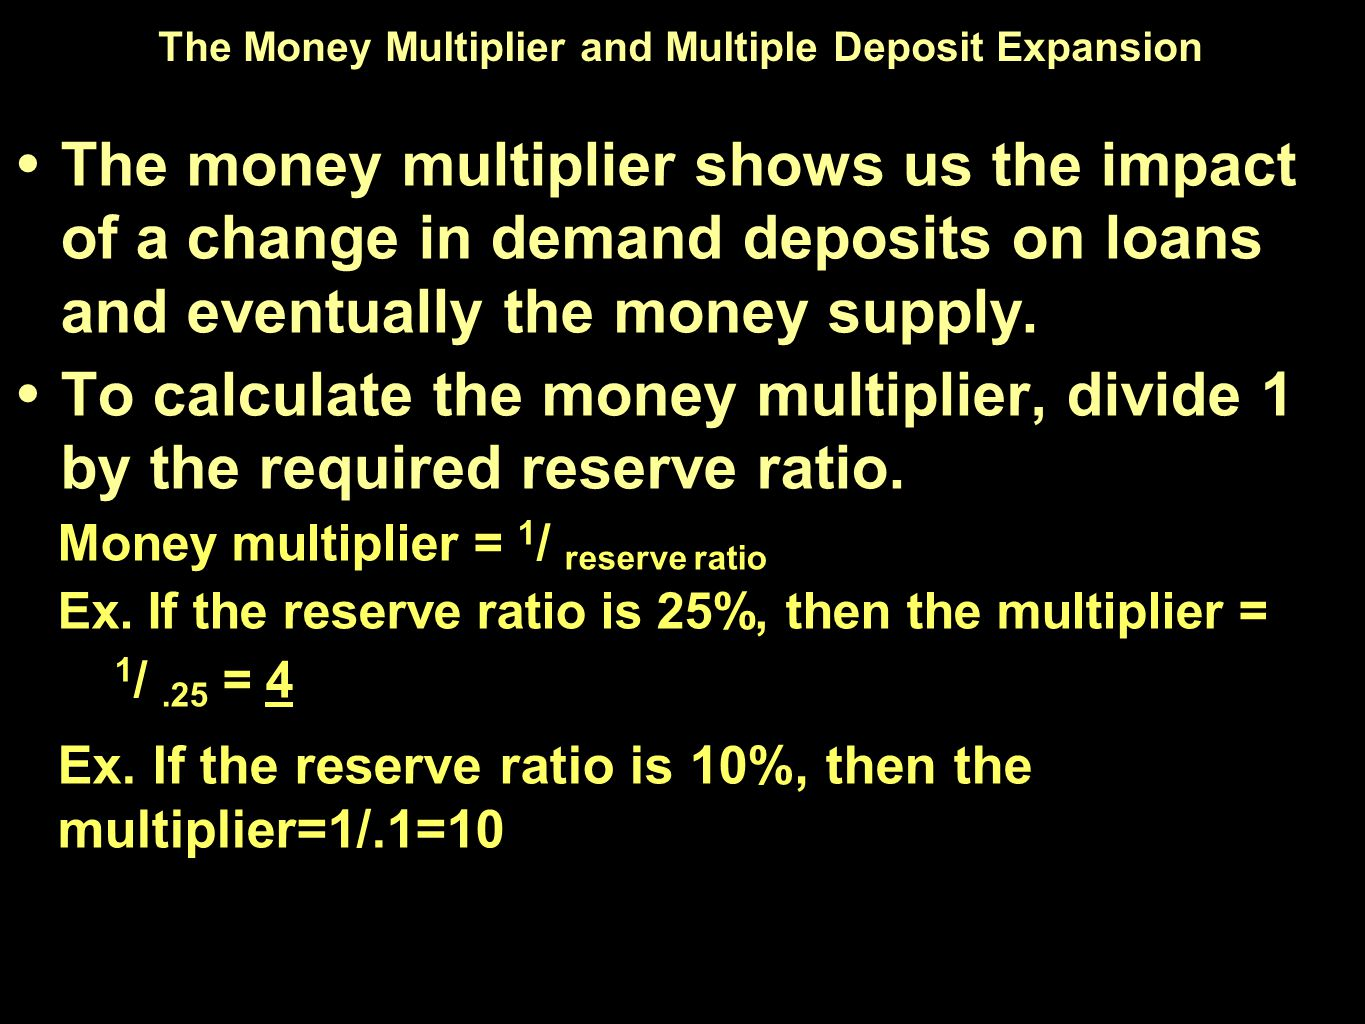 The Money Multiplier and Multiple Deposit Expansion